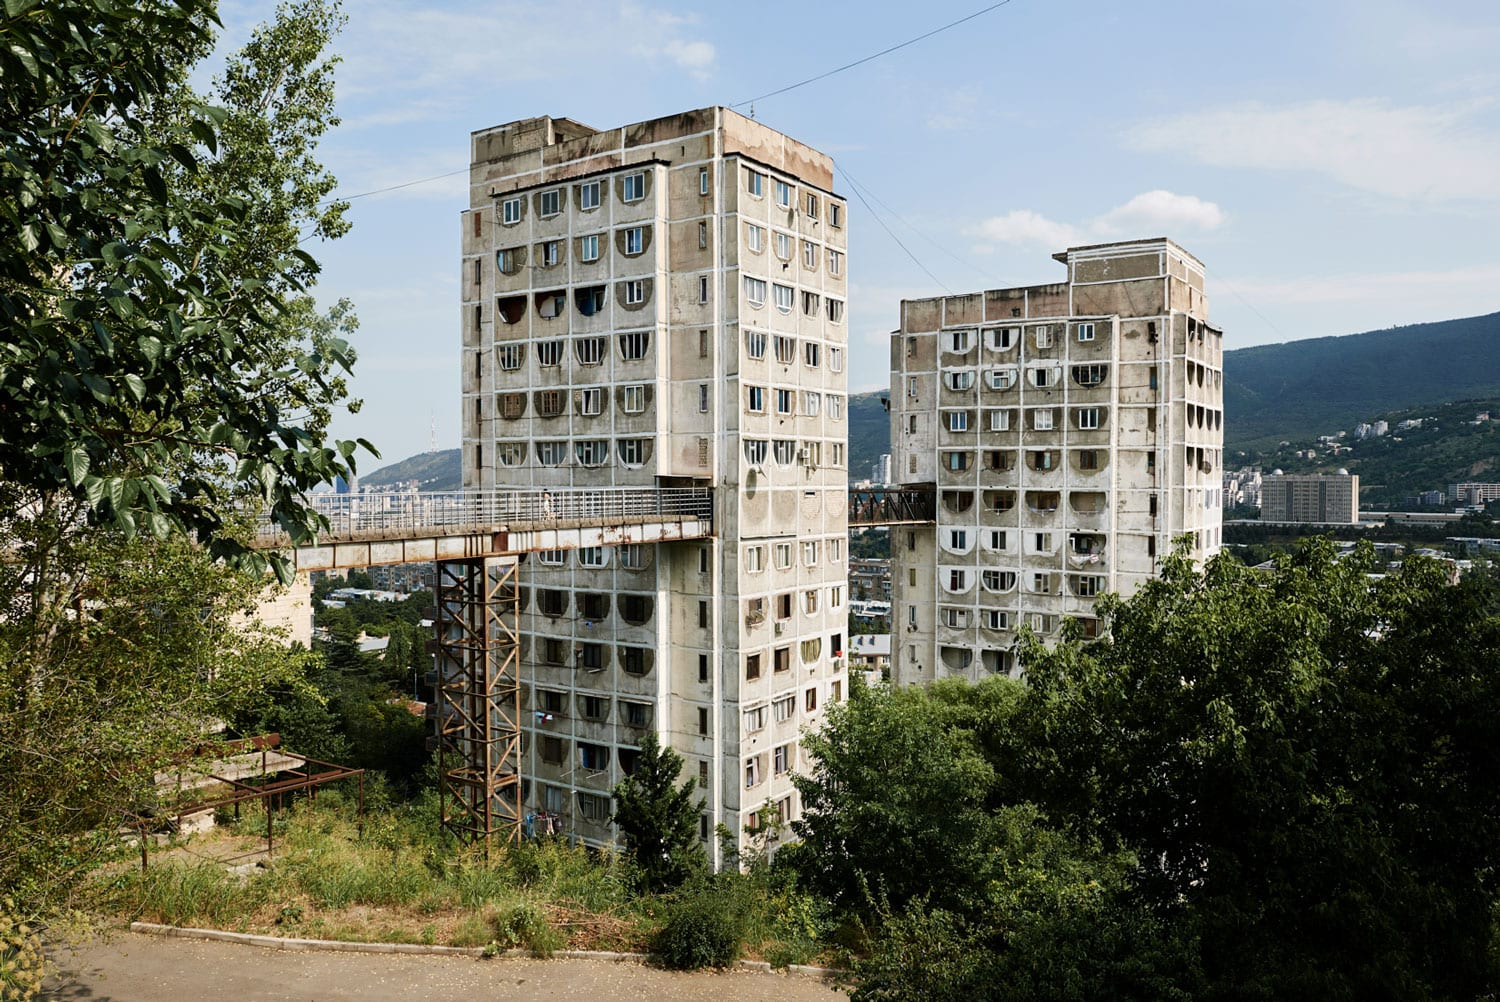 Alex Schoelcher Captures Soviet-era Nutsubidze Plato 1 Apartment Complex and it's Residents in Tbilisi, Georgia | Yellowtrace